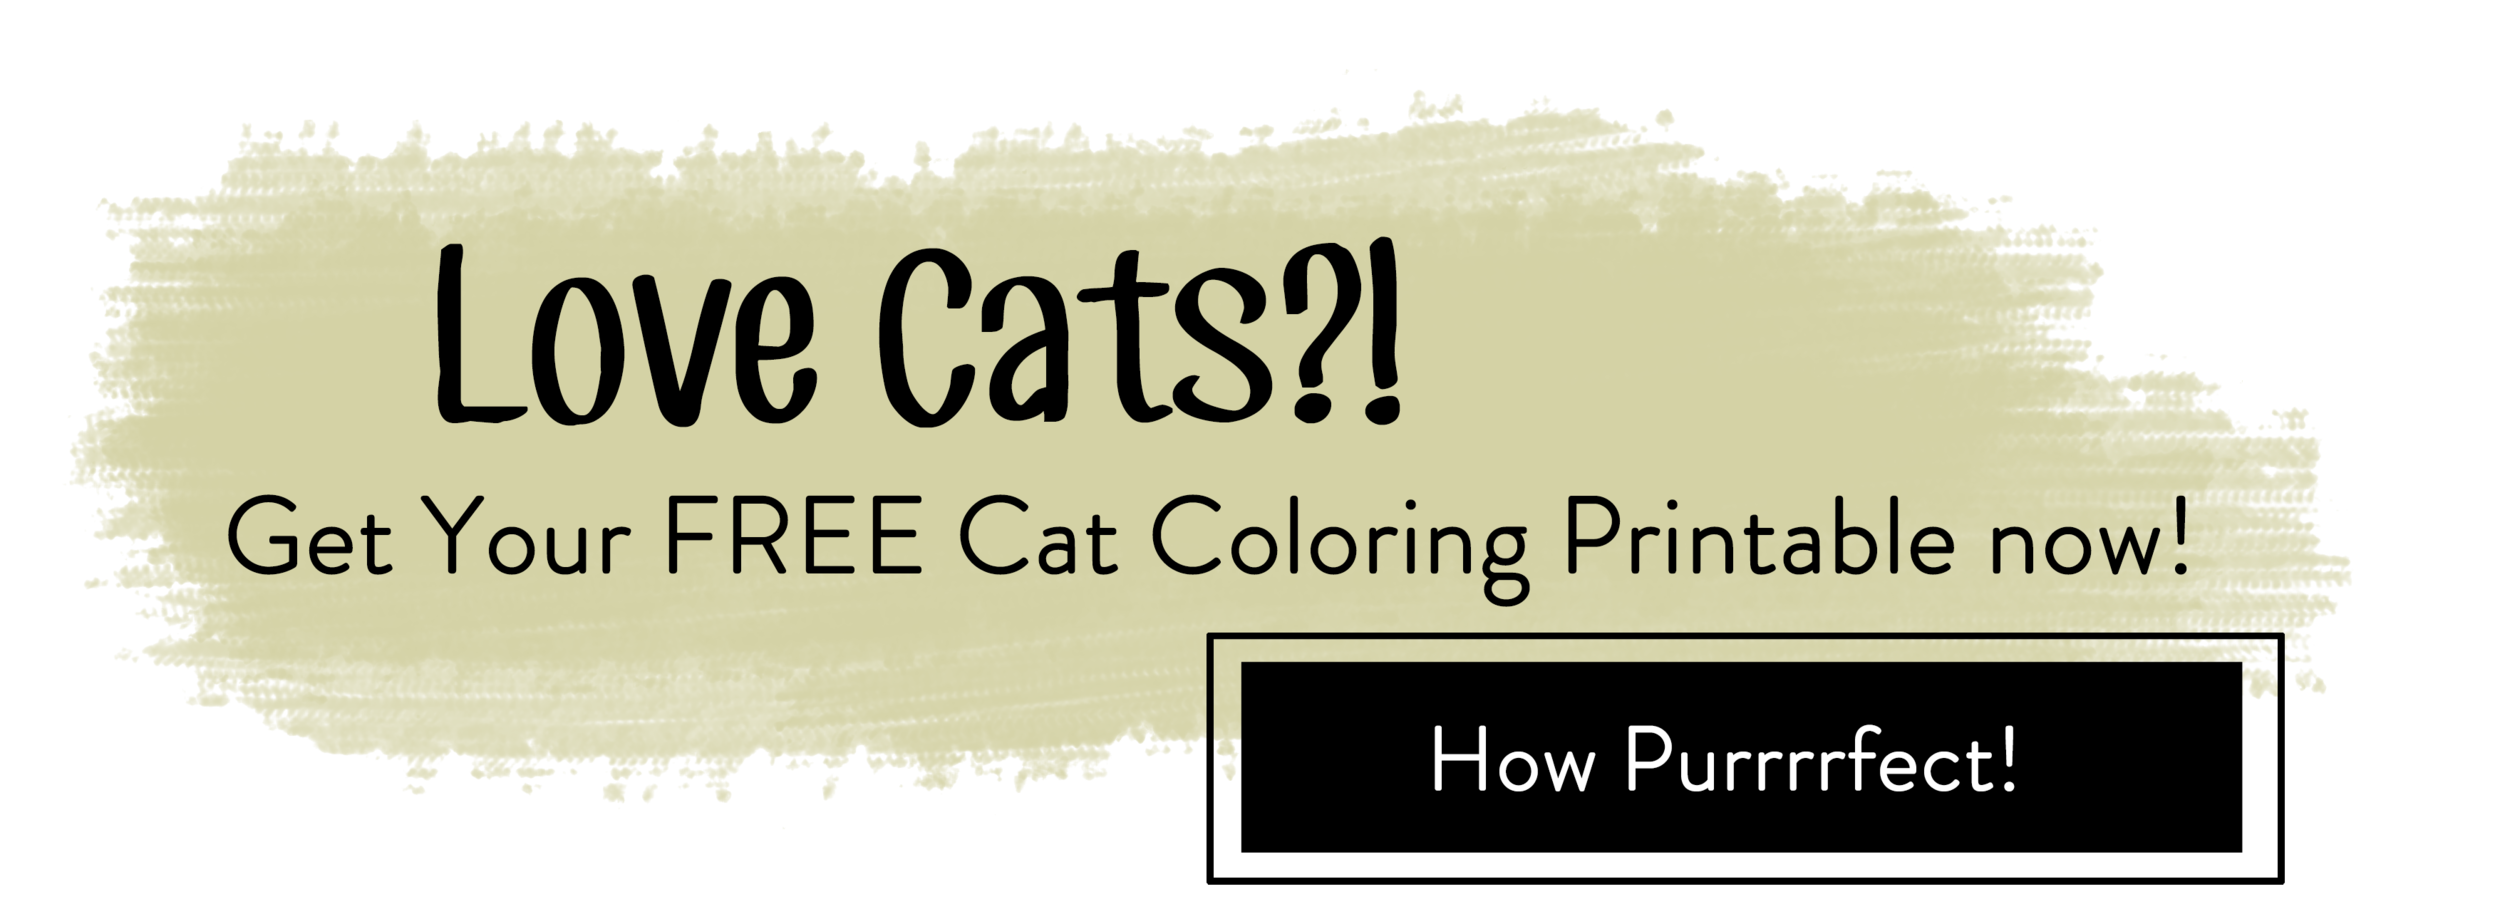 cat coloring page #catcoloring